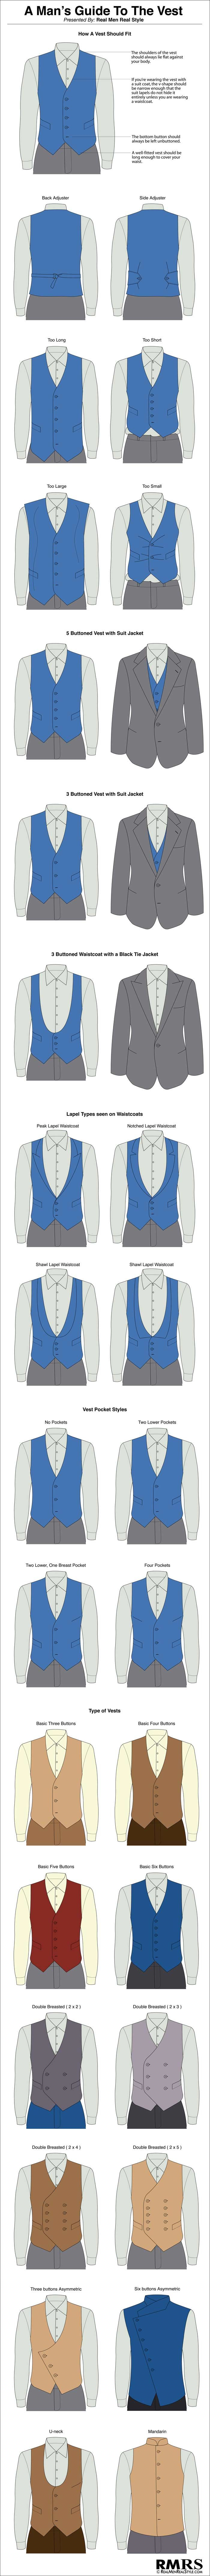 How To Wear Men's Vests - Infographic | LIFESTYLE BY PS